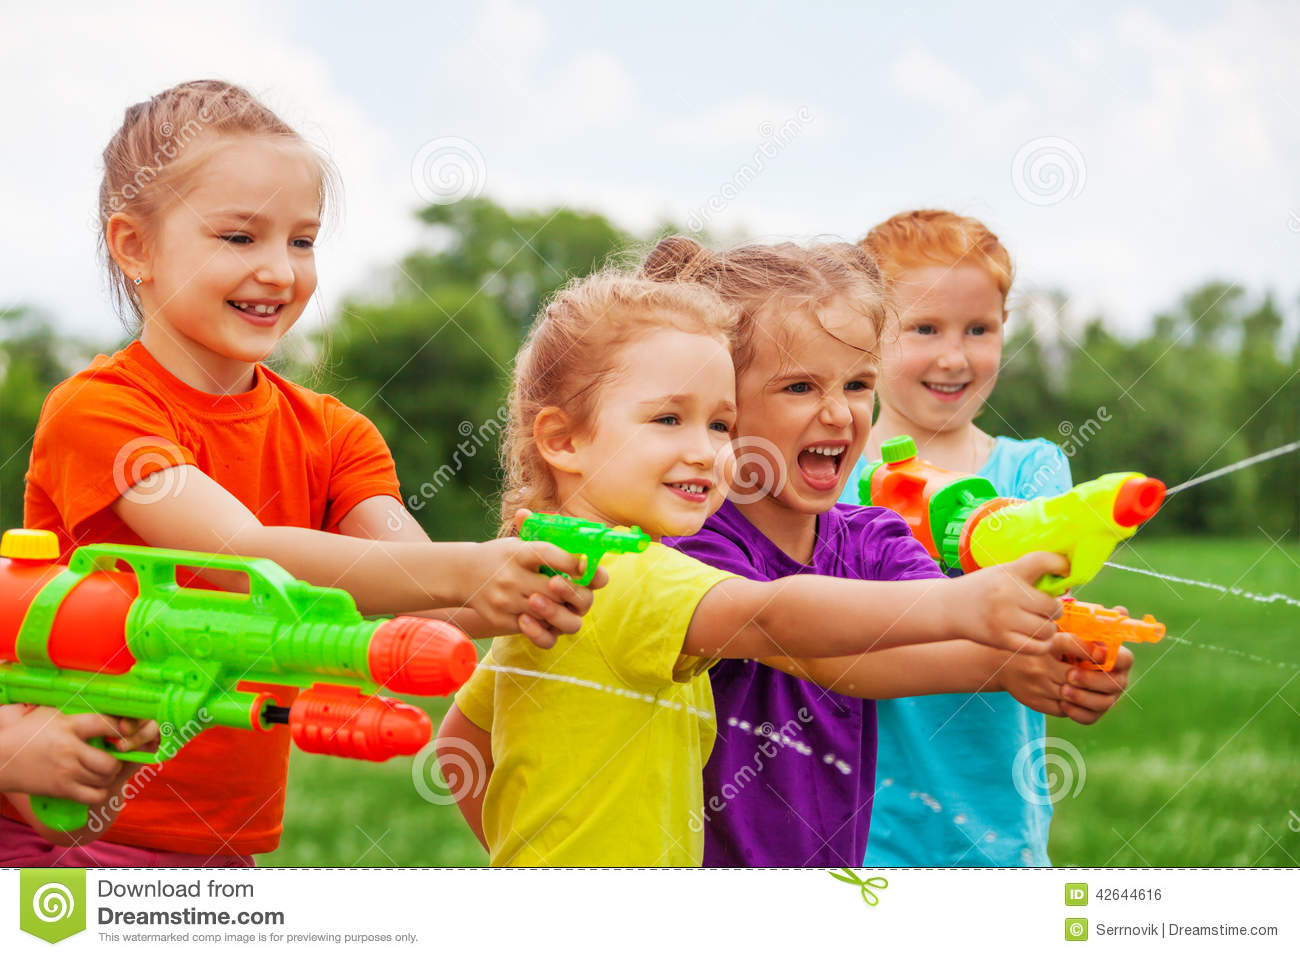 kids play water Kids play with water guns on a meadow Royalty Free Stock Image